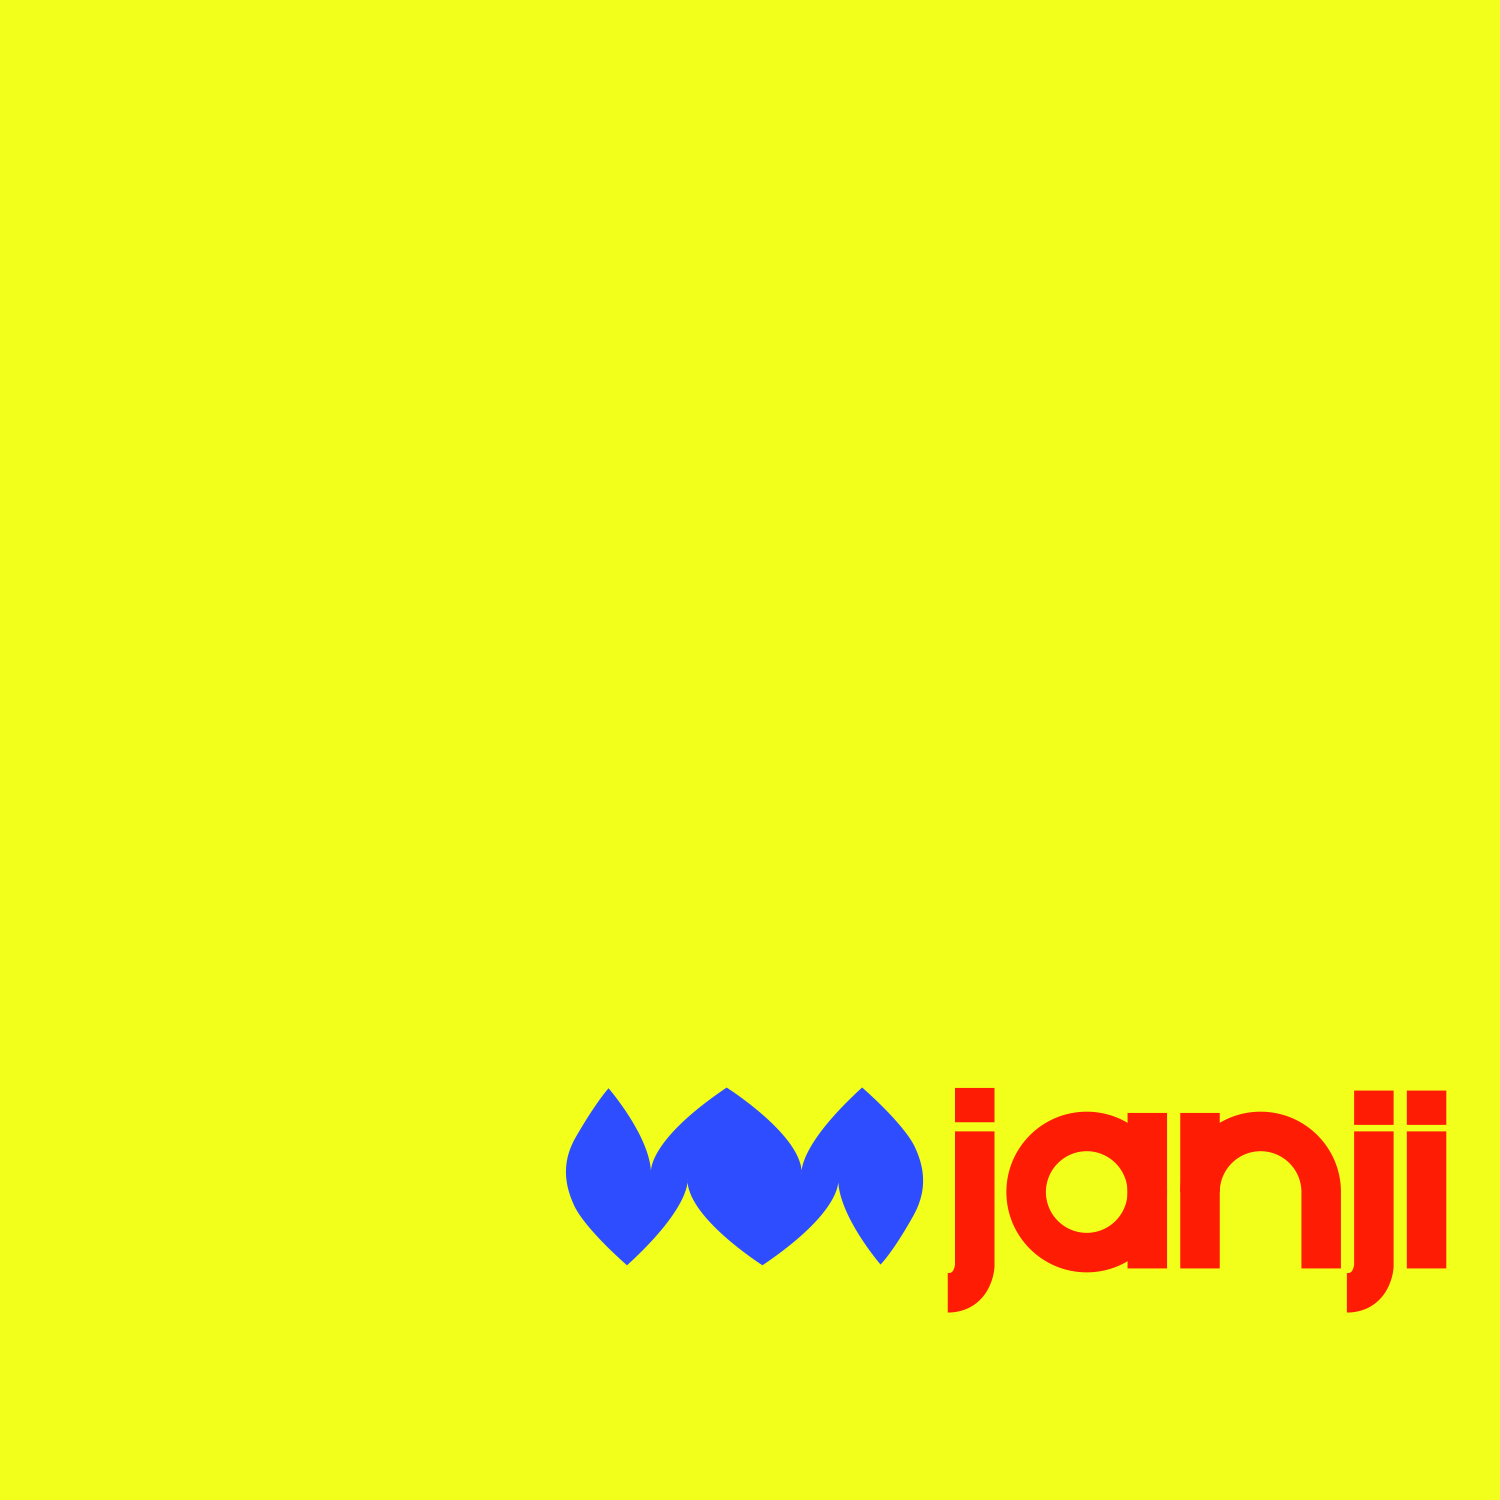 JANJI is a running apparel brand that provides water to those in need.    JANJI - RUN FOR ANOTHER